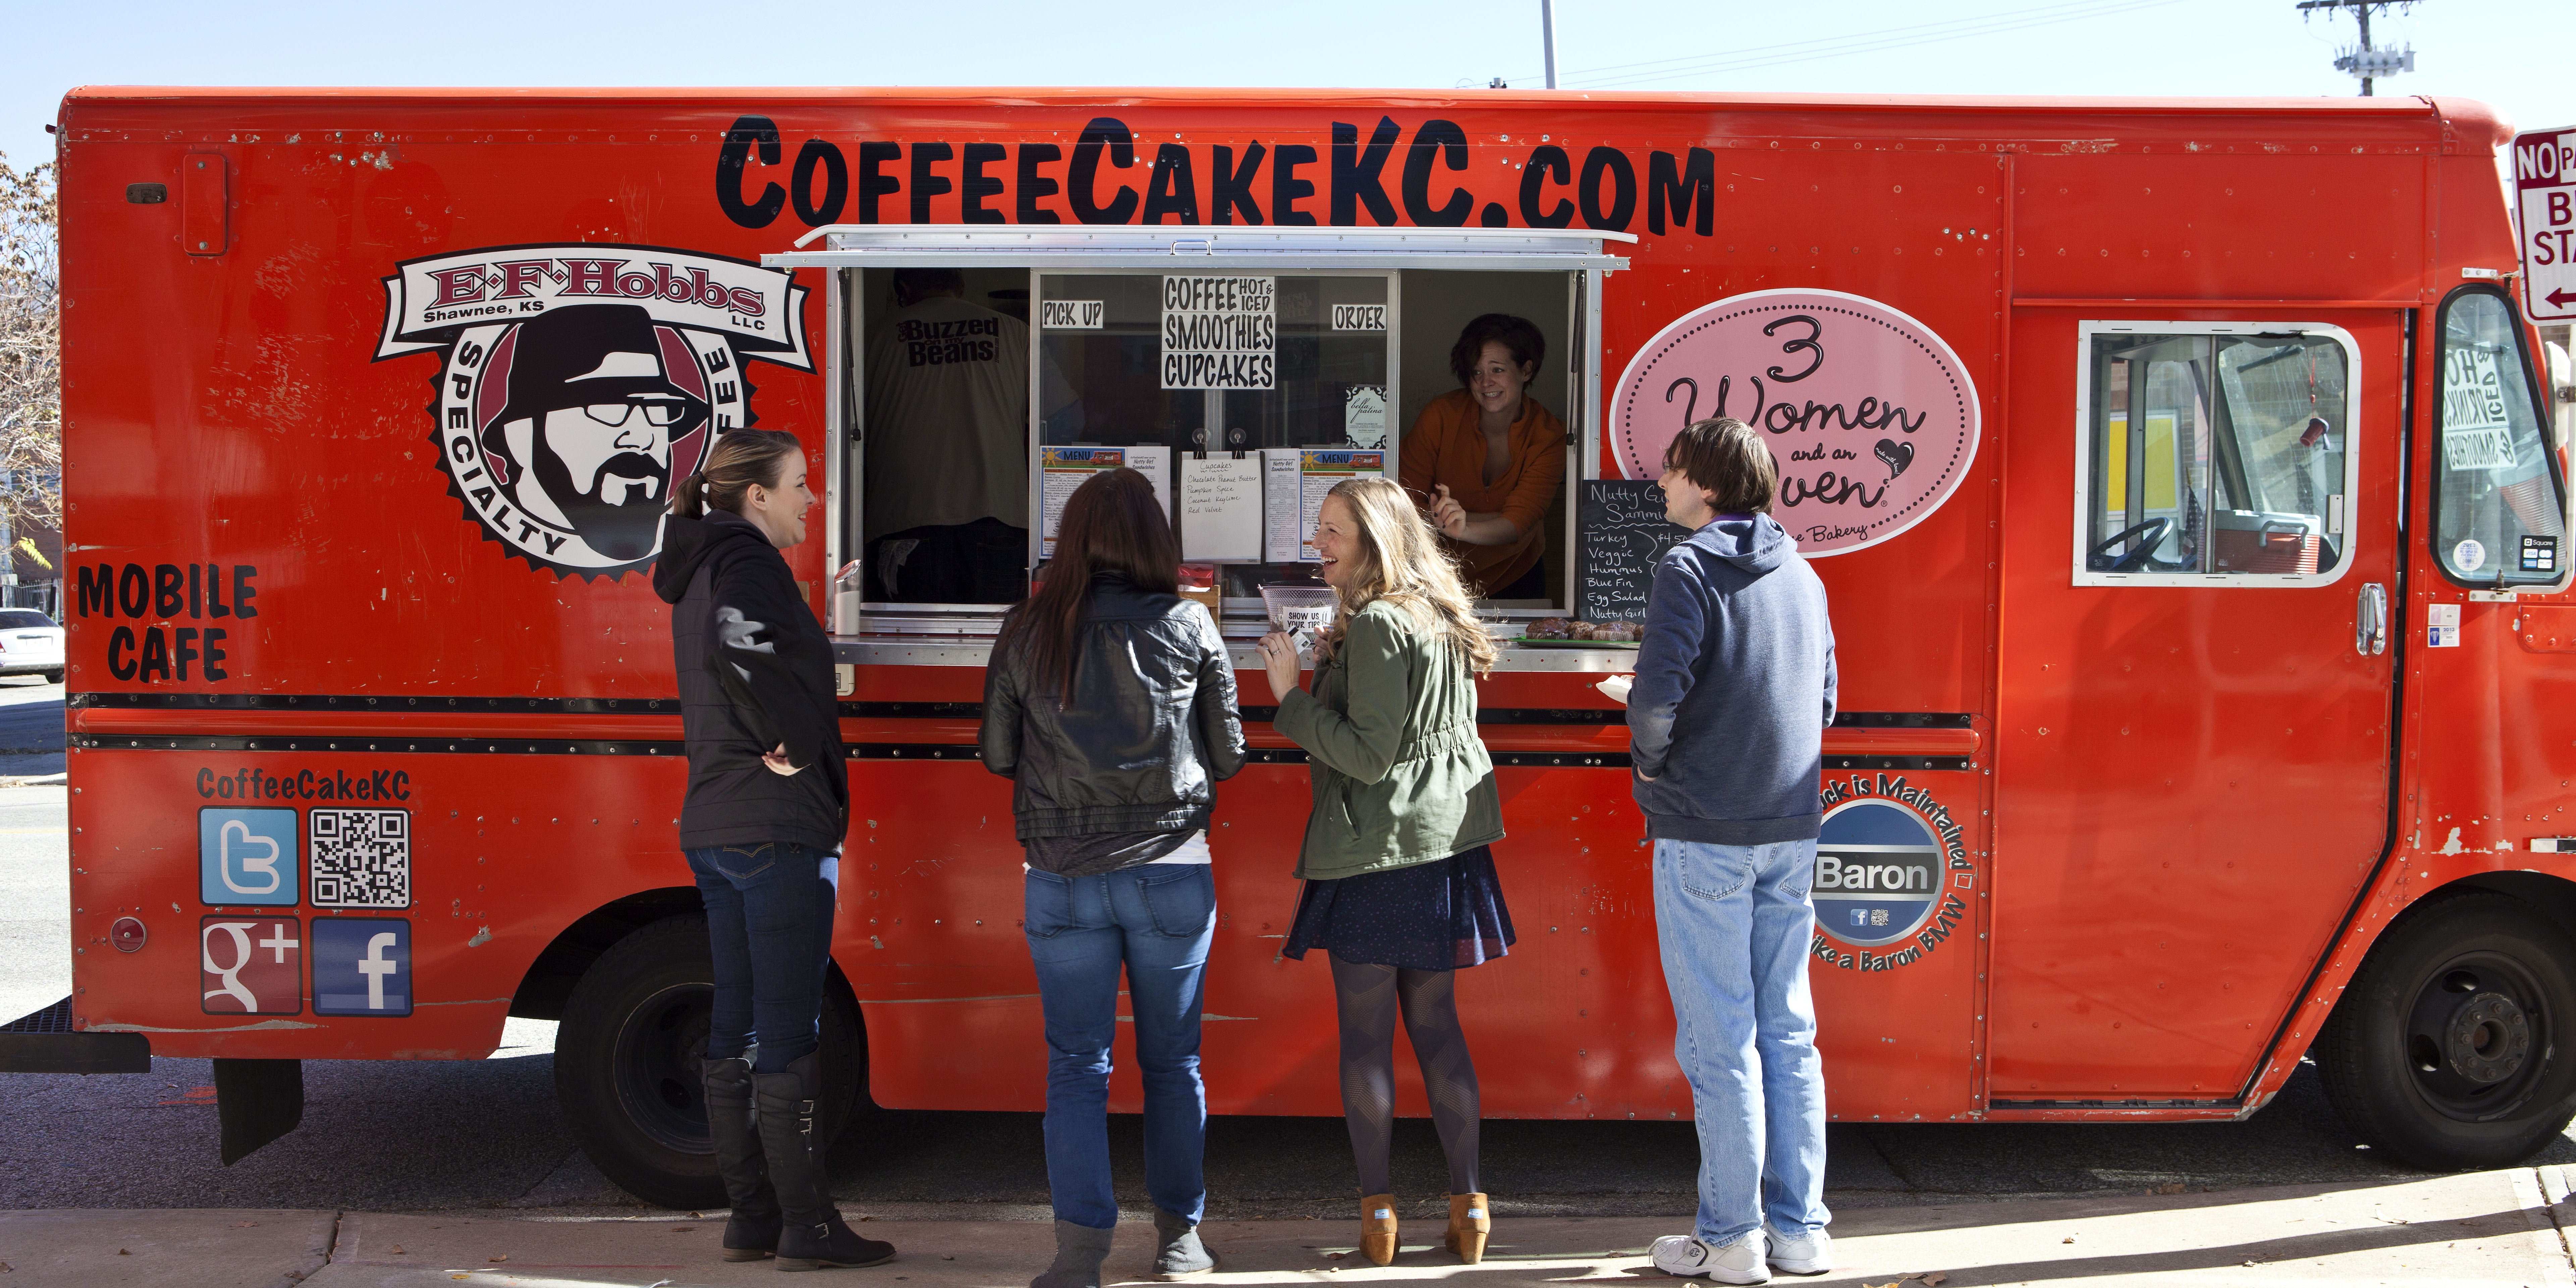 CoffeeCakeKC coffee and dessert shop on wheels.